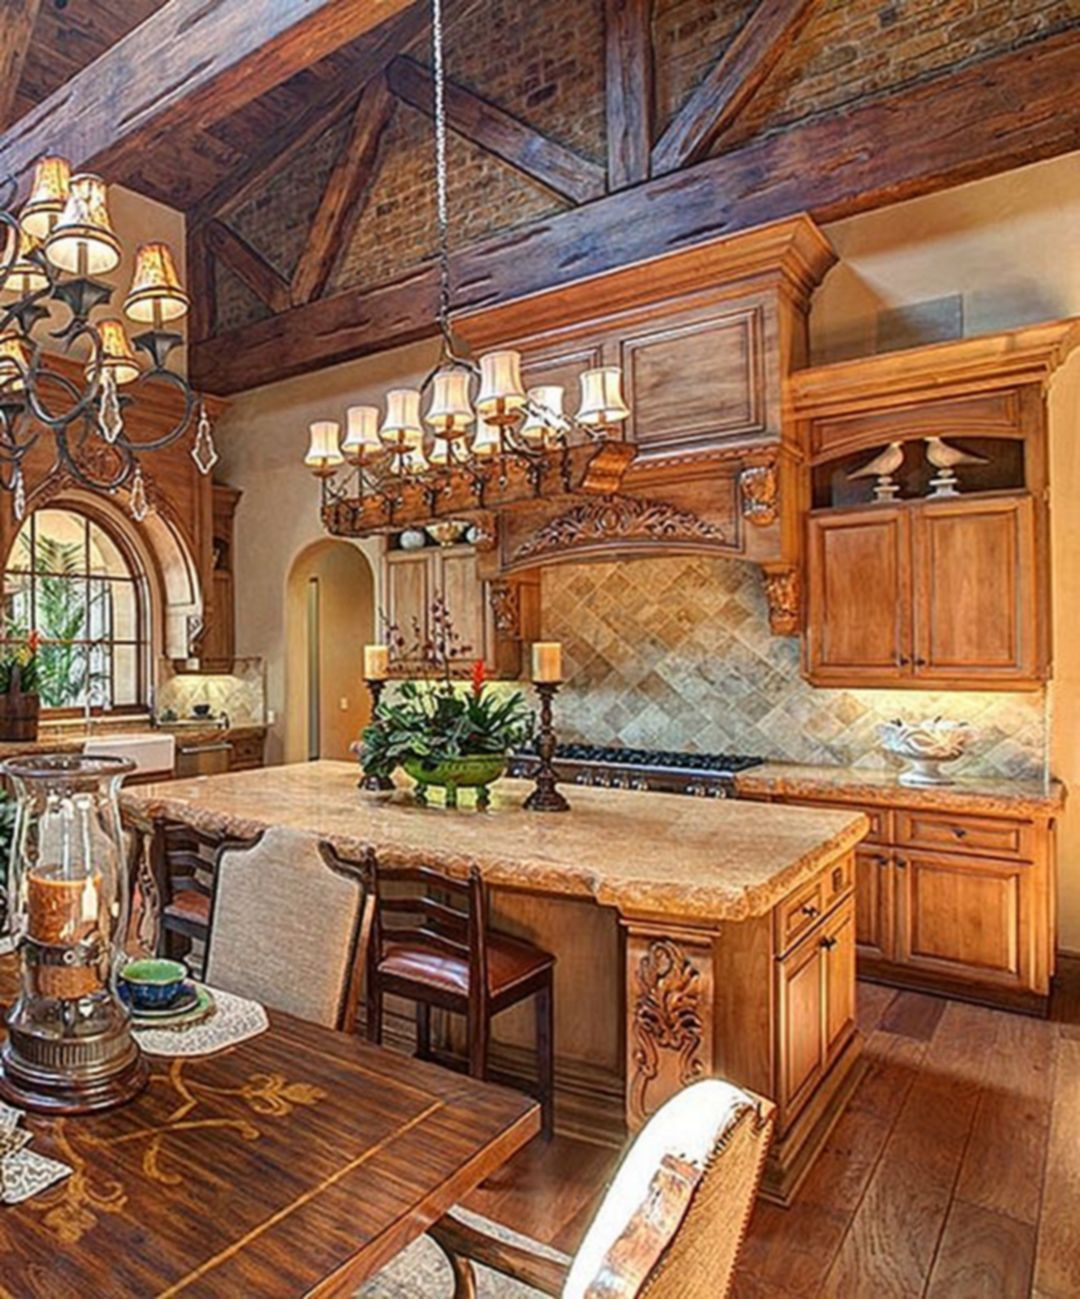 20 wonderful italian rustic kitchen decorating ideas to inspire your home tuscan kitchen on kitchen ideas colorful id=78371